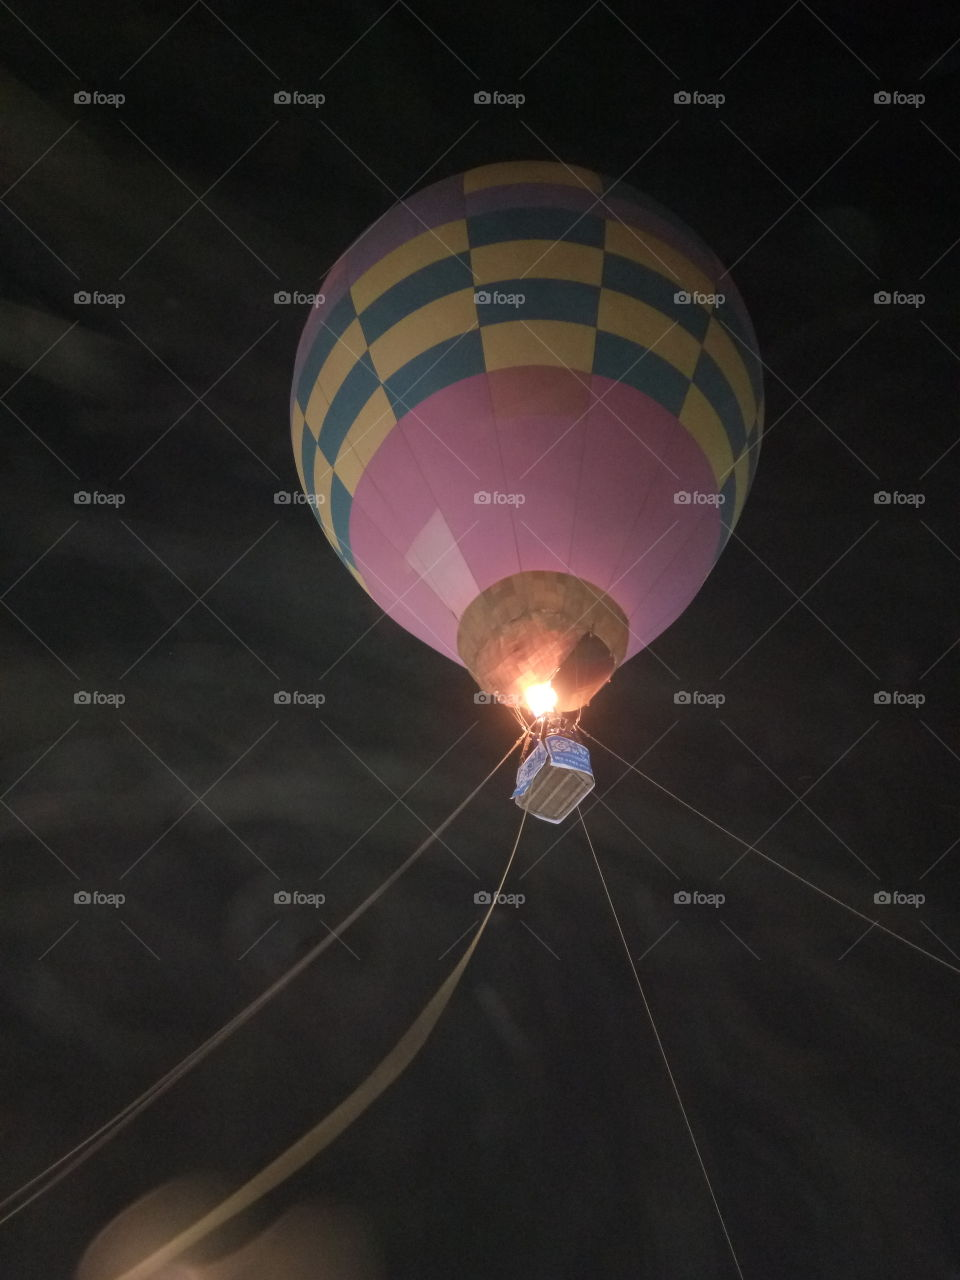 A hot air balloon is a lighter than air aircraft consisting of a bag, called an envelope, which contains heated air. Suspended beneath is a gondola or wicker basket (in some long-distance or high-altitude balloons, a capsule), which carries passengers and (usually) a source of heat, in most cases an open flame. The heated air inside the envelope makes it buoyant since it has a lower density than the colder air outside the envelope. As with all aircraft, hot air balloons cannot fly beyond the atmosphere. Unlike gas balloons, the envelope does not have to be sealed at the bottom, since the air near the bottom of the envelope is at the same pressure as the surrounding air. In modern sport balloons the envelope is generally made from nylon fabric and the inlet of the balloon (closest to the burner flame) is made from a fire resistant material such as Nomex. Modern balloons have been made in all kinds of shapes, such as rocket ships and the shapes of various commercial products, though the traditional shape is used for most non-commercial, and many commercial, applications.  The hot air balloon is the first successful human-carrying flight technology. The first untethered manned hot air balloon flight was performed by Jean-François Pilâtre de Rozierand François Laurent d'Arlandes on November 21, 1783, in Paris, France,[1] in a balloon created by the Montgolfier brothers.[2] The first hot-air balloon flown in the Americas was launched from the Walnut Street Jail in Philadelphia on January 9, 1793 by the French aeronaut Jean Pierre Blanchard.[3] Hot air balloons that can be propelled through the air rather than simply drifting with the wind are known as thermal airships. A hot air balloon is a lighter than air aircraft consisting of a bag, called an envelope, which contains heated air. Suspended beneath is a gondola or wicker basket (in some long-distance or high-altitude balloons, a capsule), which carries passengers and (usually) a source of heat, in most cases an open..